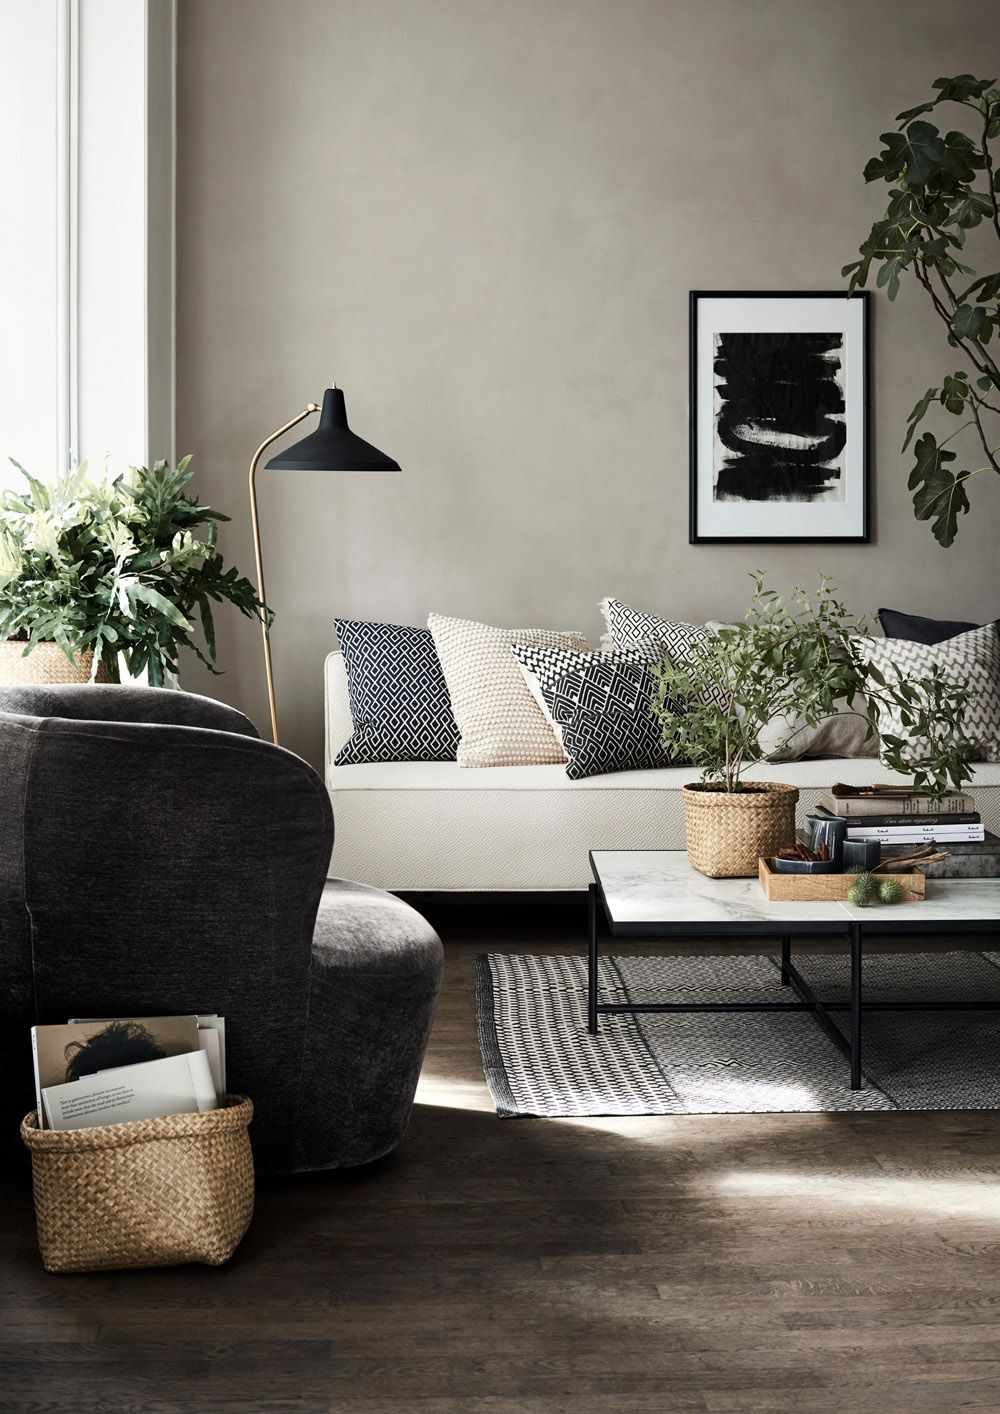 h&m home ss2017 | natural wood flooring, flooring companies and